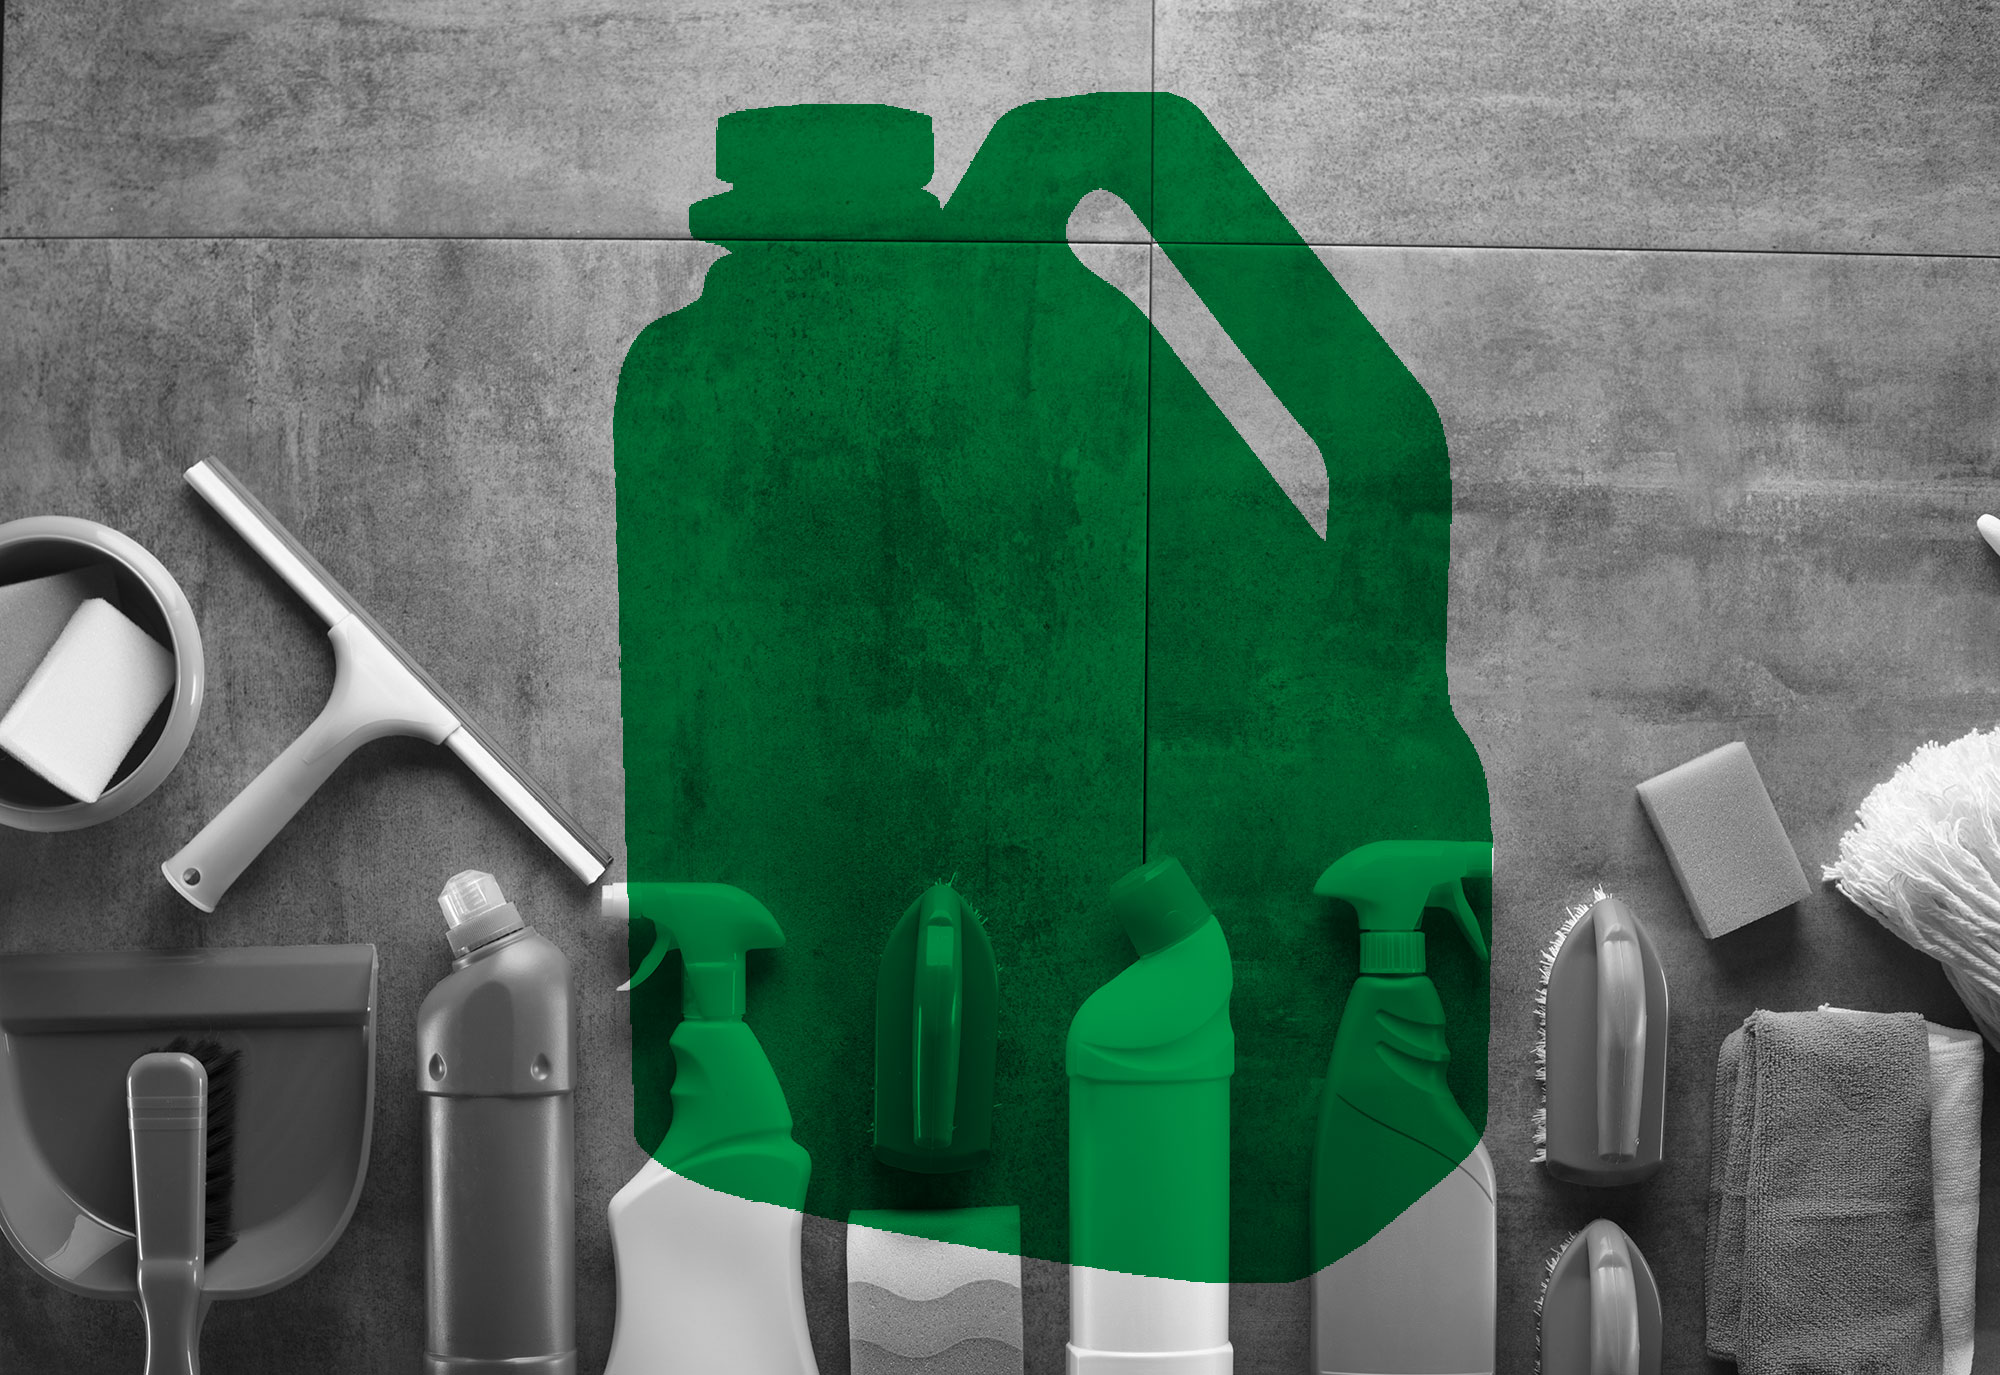 Choosing a Green Cleaning Product